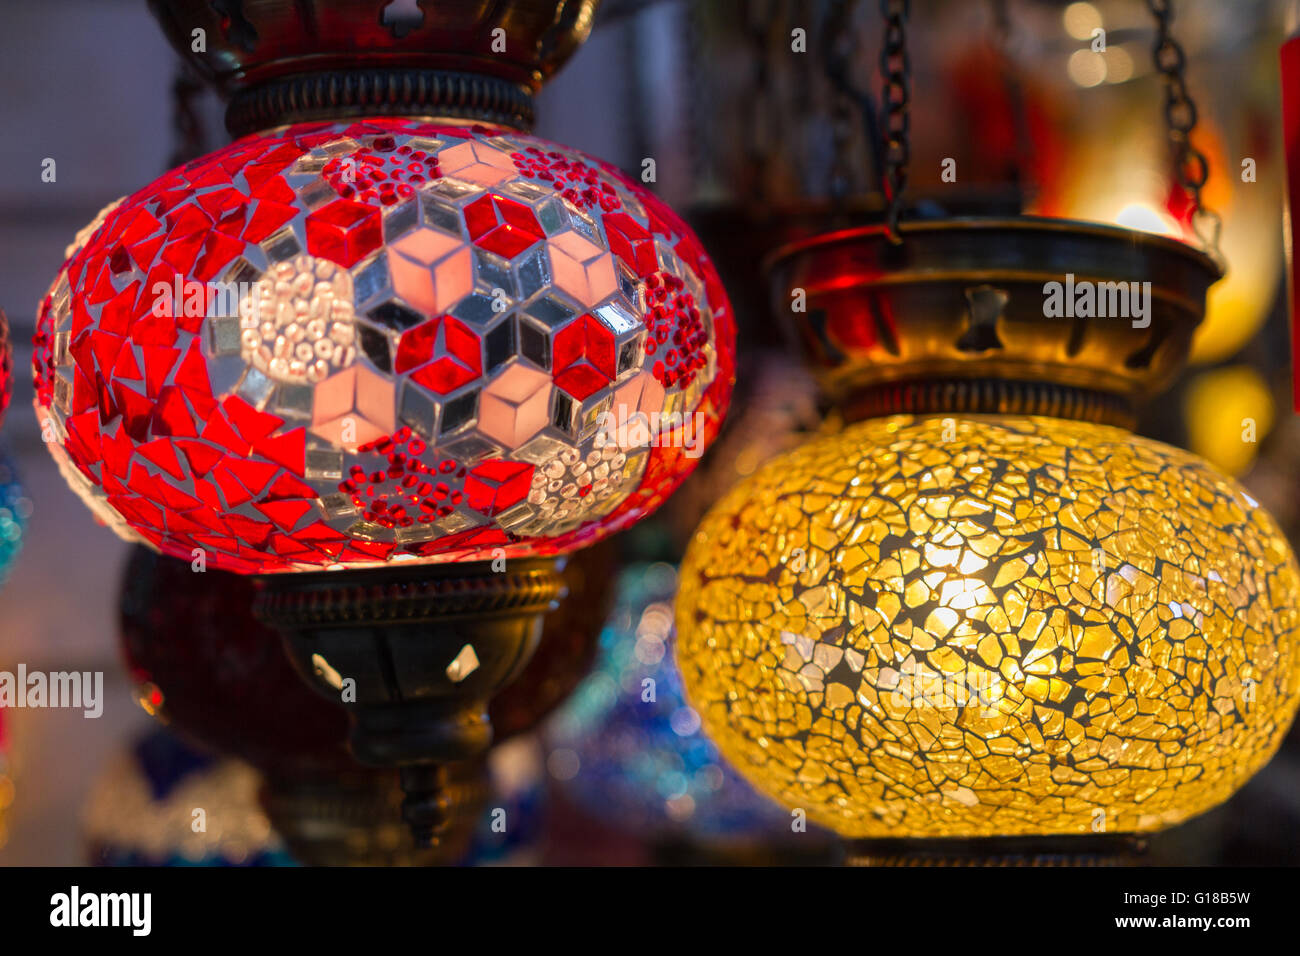 Traditional stained glass oriental lampshades in a shop in plaka traditional stained glass oriental lampshades in a shop in plaka district in athens greece aloadofball Choice Image